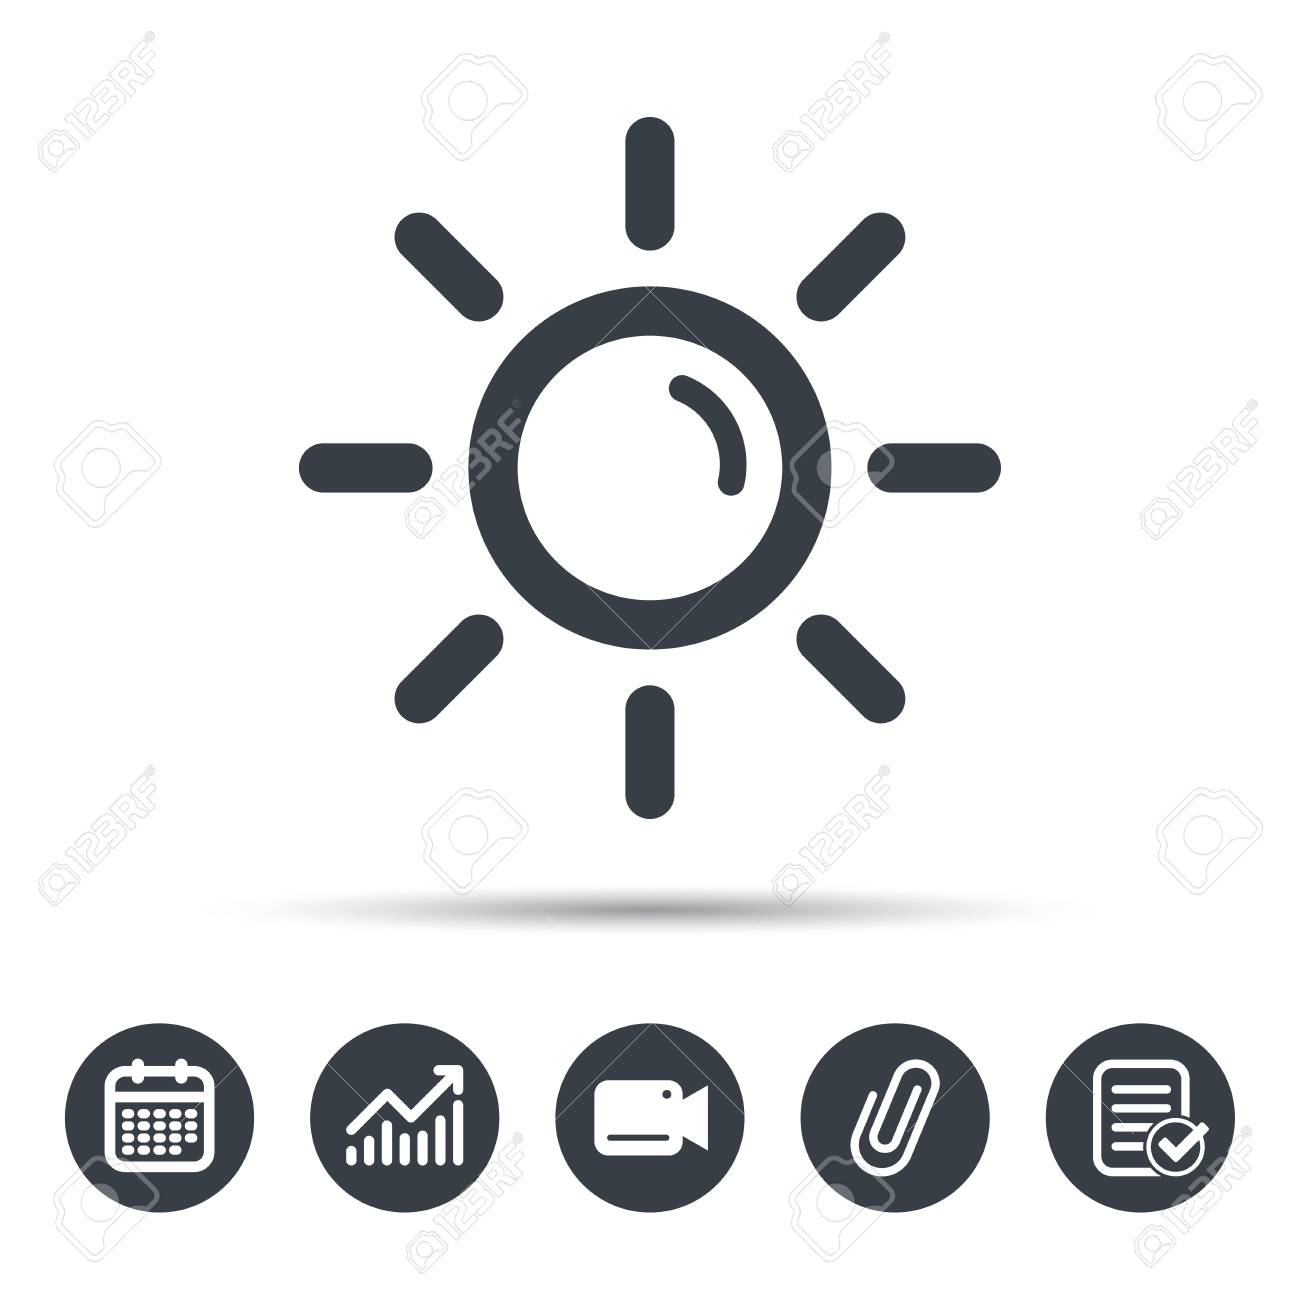 Sunny Weather Symbol Image Collections Meaning Of Text Symbols